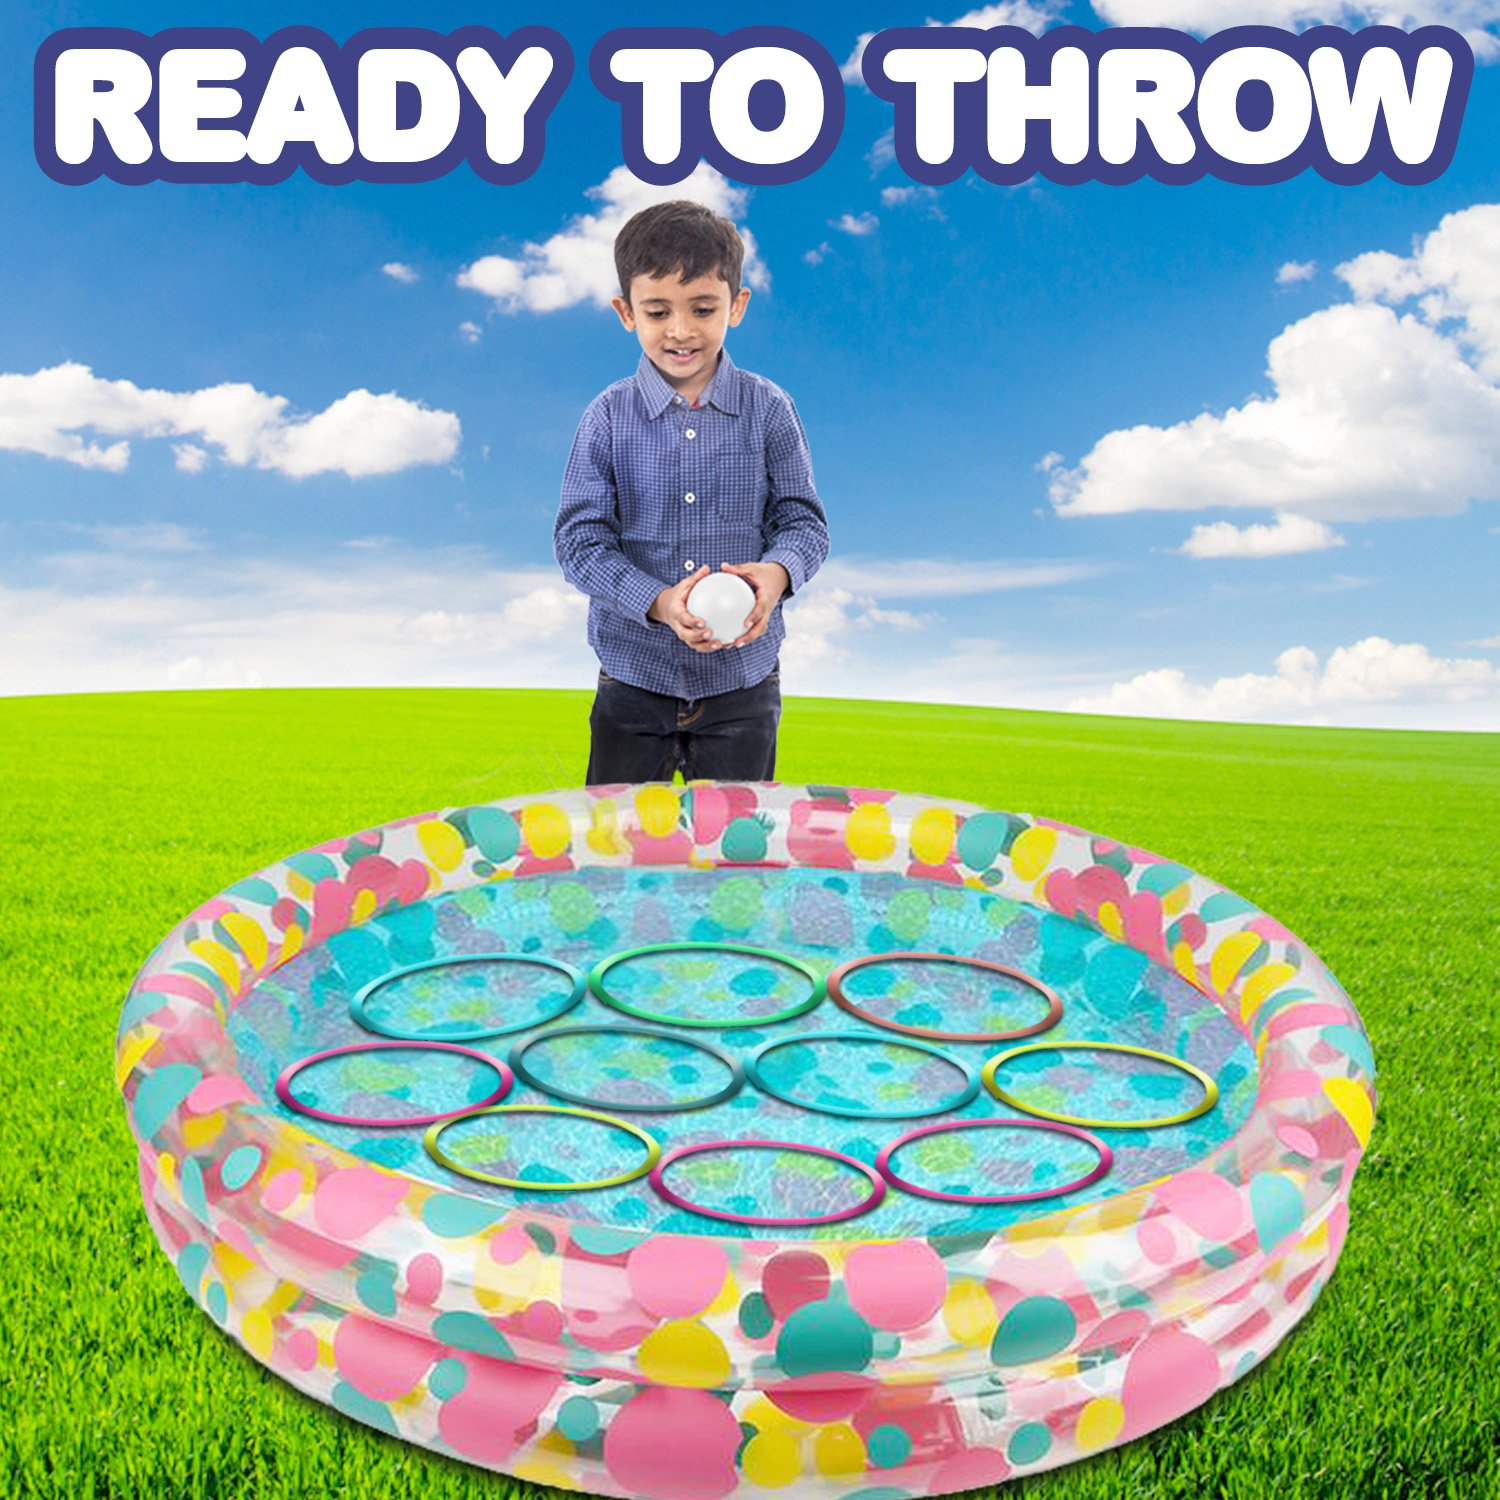 Best Lawn Yard Birthday Party Activity for Boys /& Girls GamieTM Includes an Inflatable Pool Gamie Water Ring Toss Game Super Fun Outdoor Games for Kids 12 Floating Rings /& 12 Plastic Balls